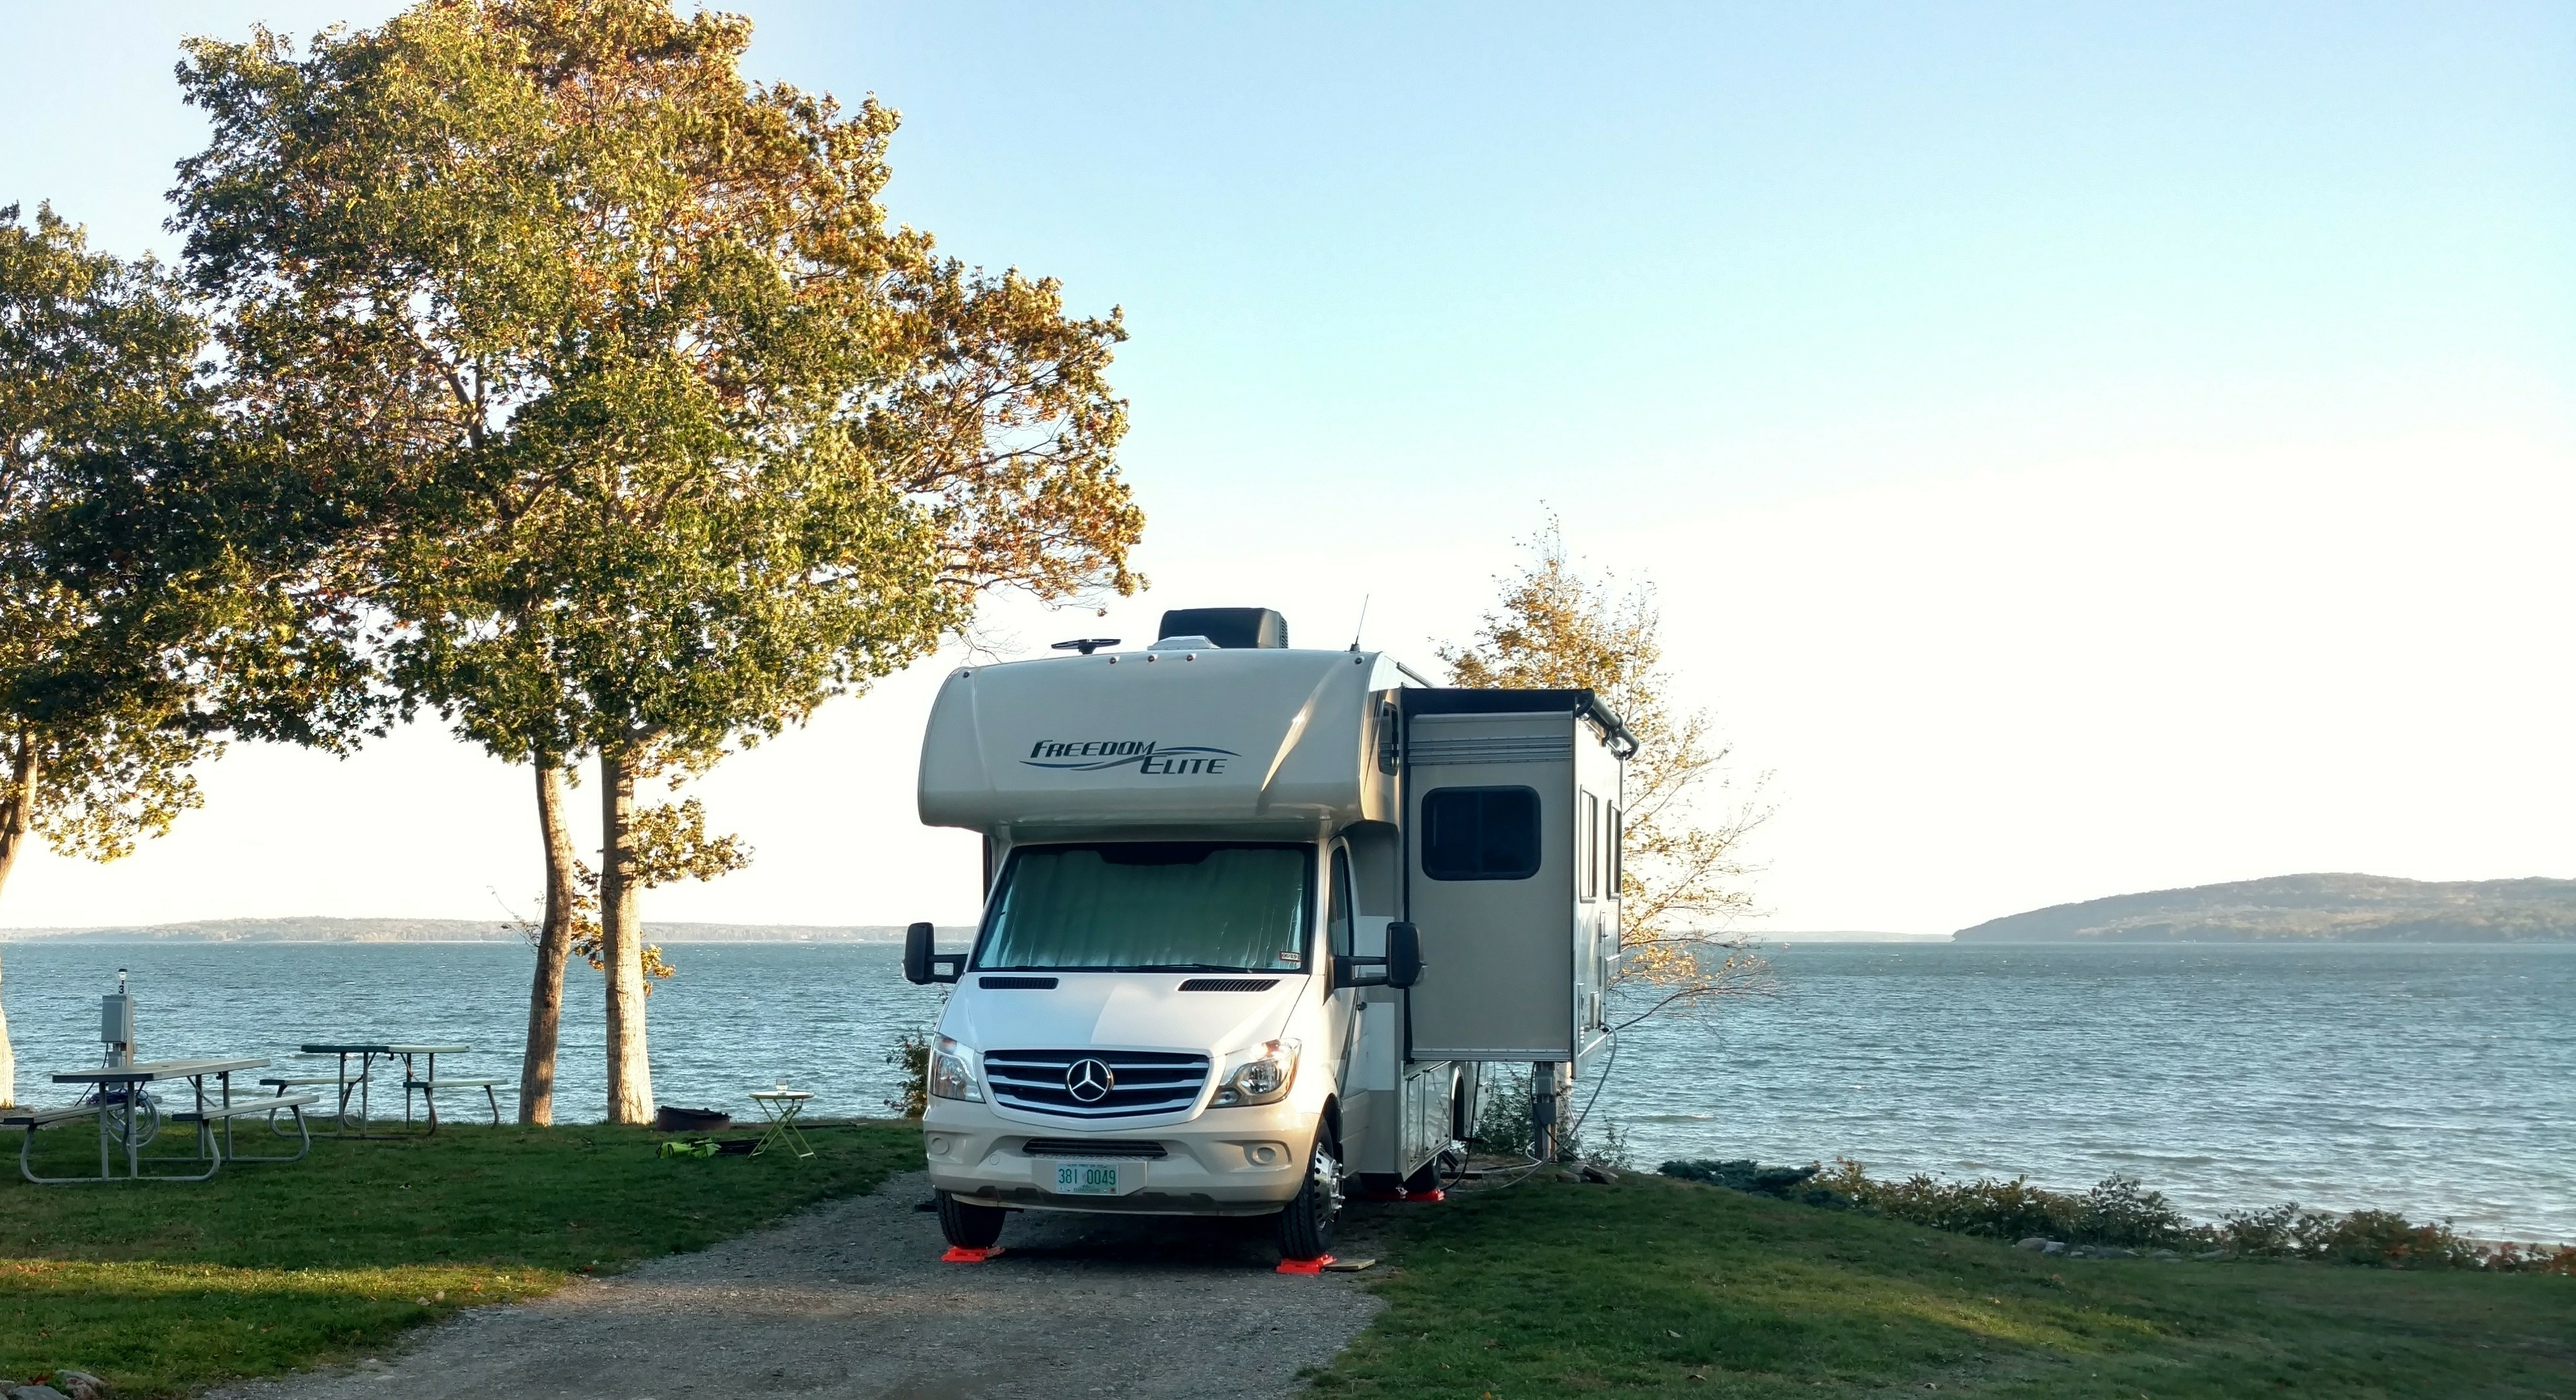 Moorings - Belfast Maine. Thor Motor Coach Freedom Elite 2019